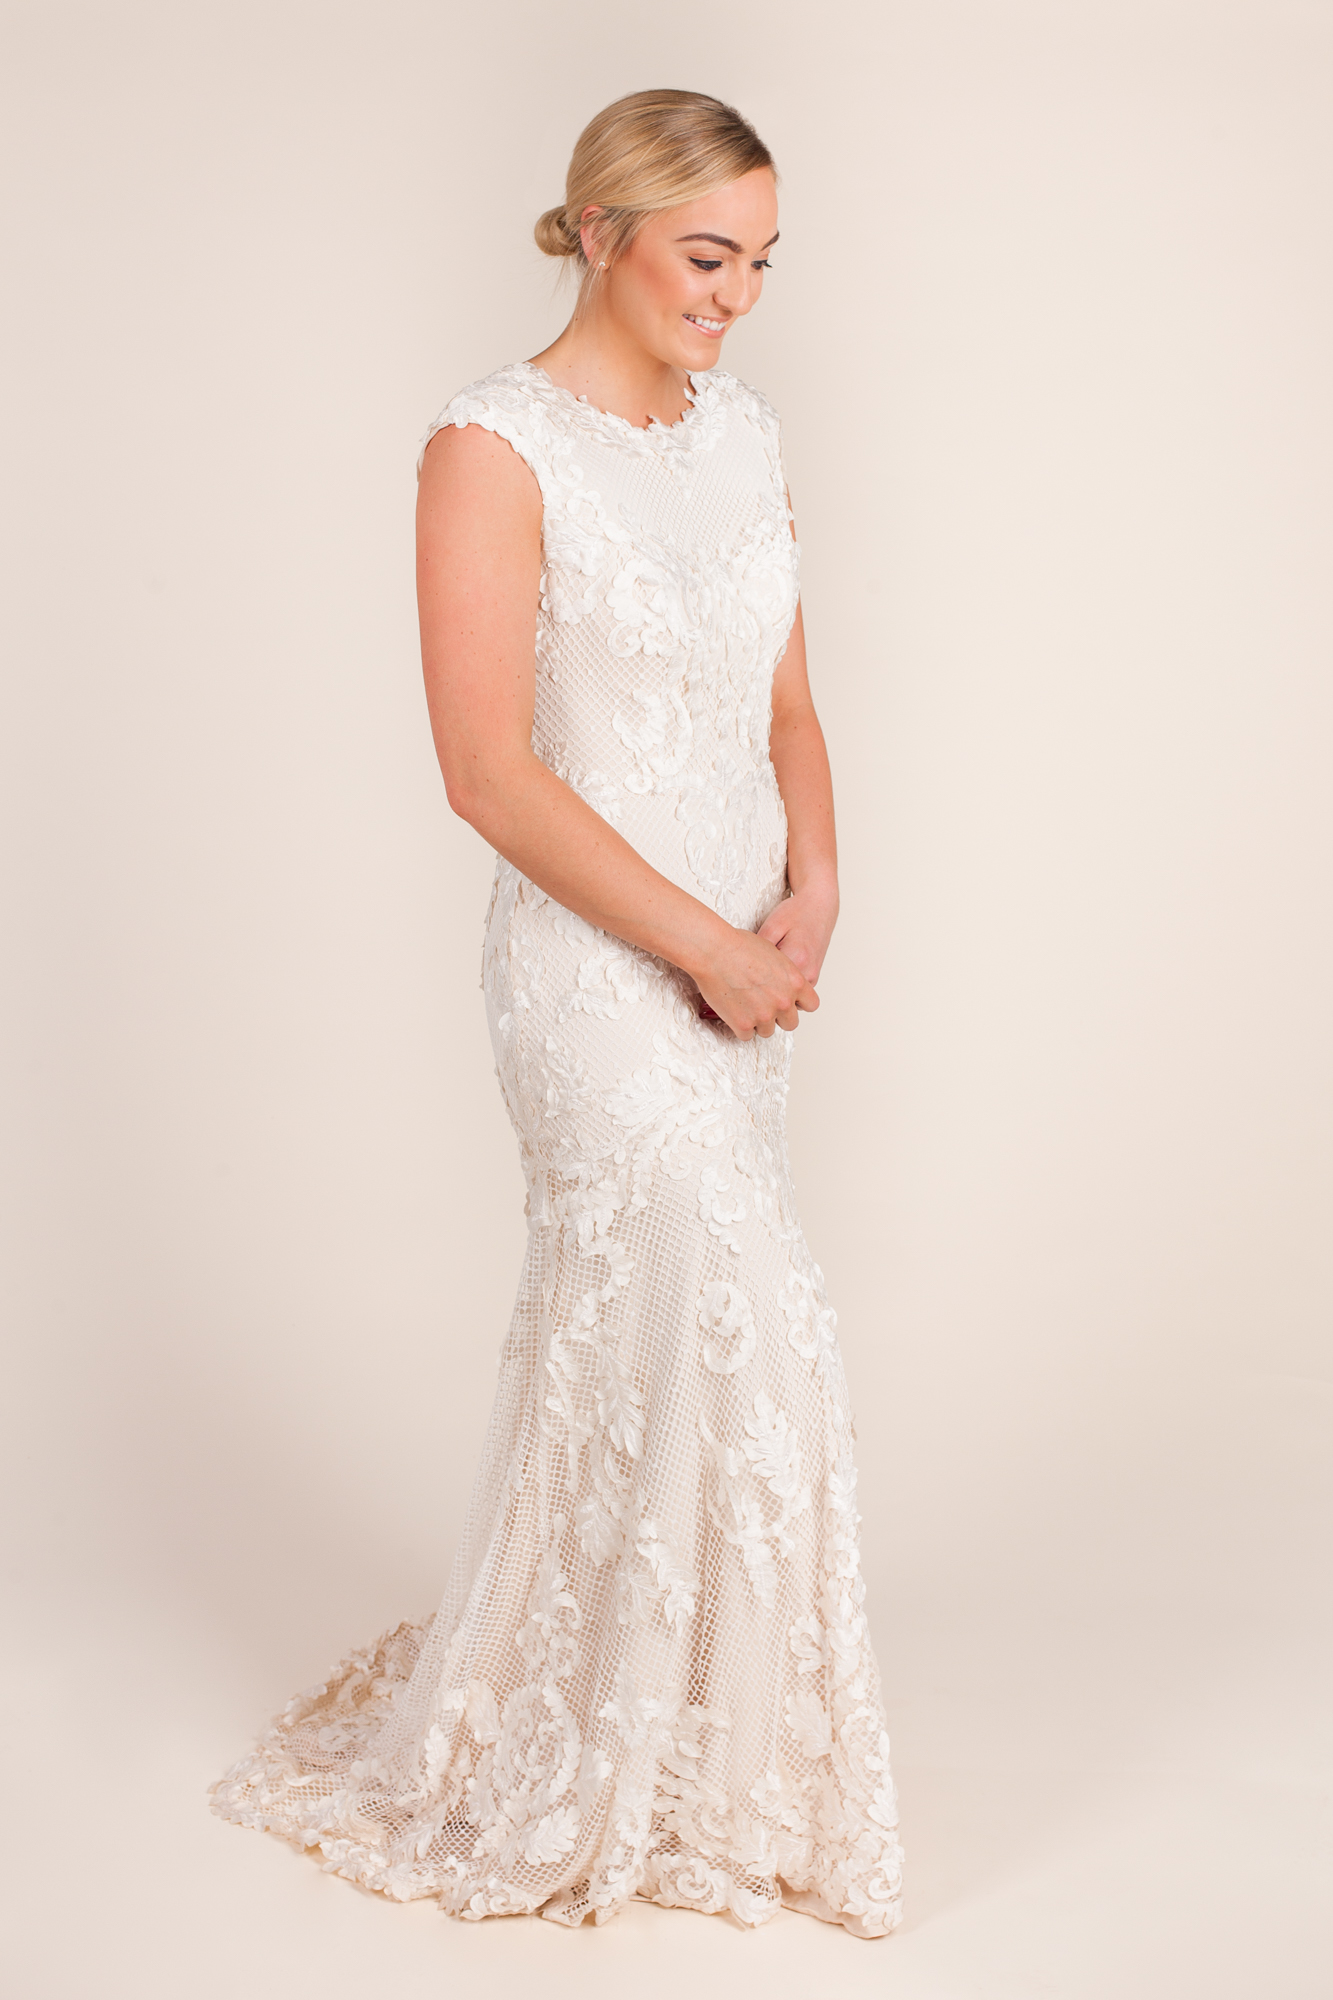 Sottero & midgley - Suzanne Rose size  - $1150 - (23% OFF)